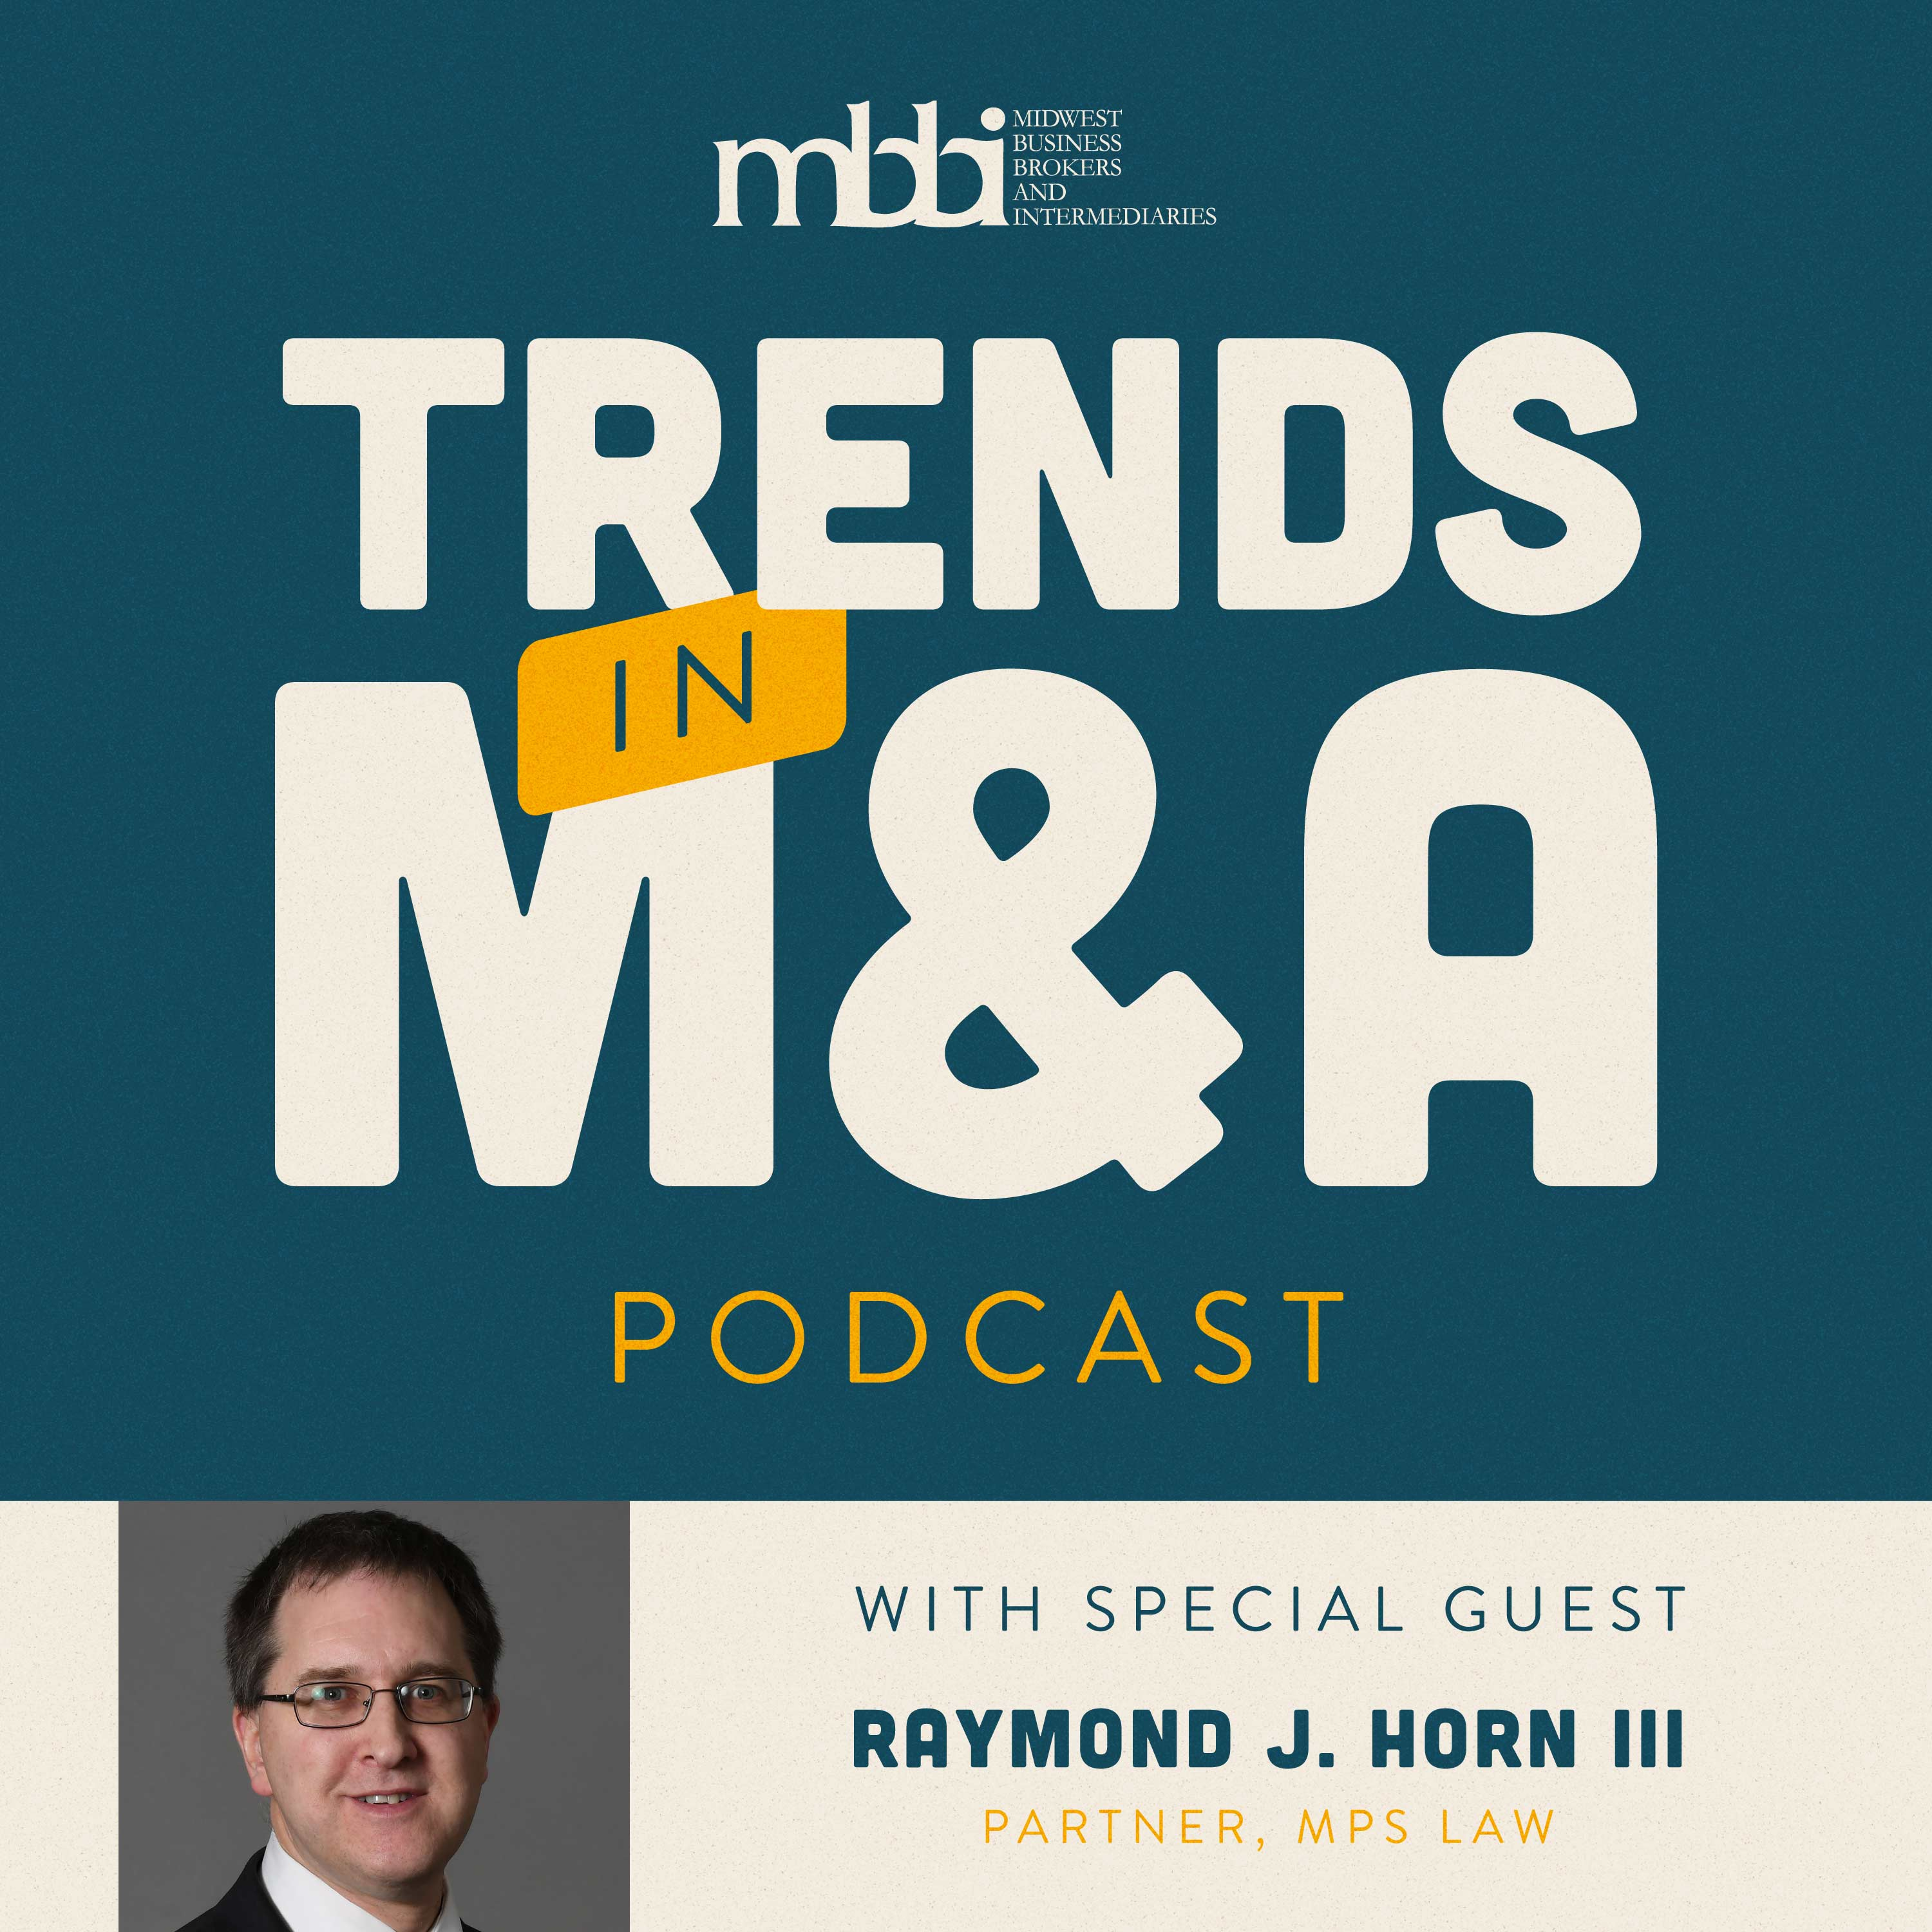 Artwork for podcast MBBI Trends in M&A